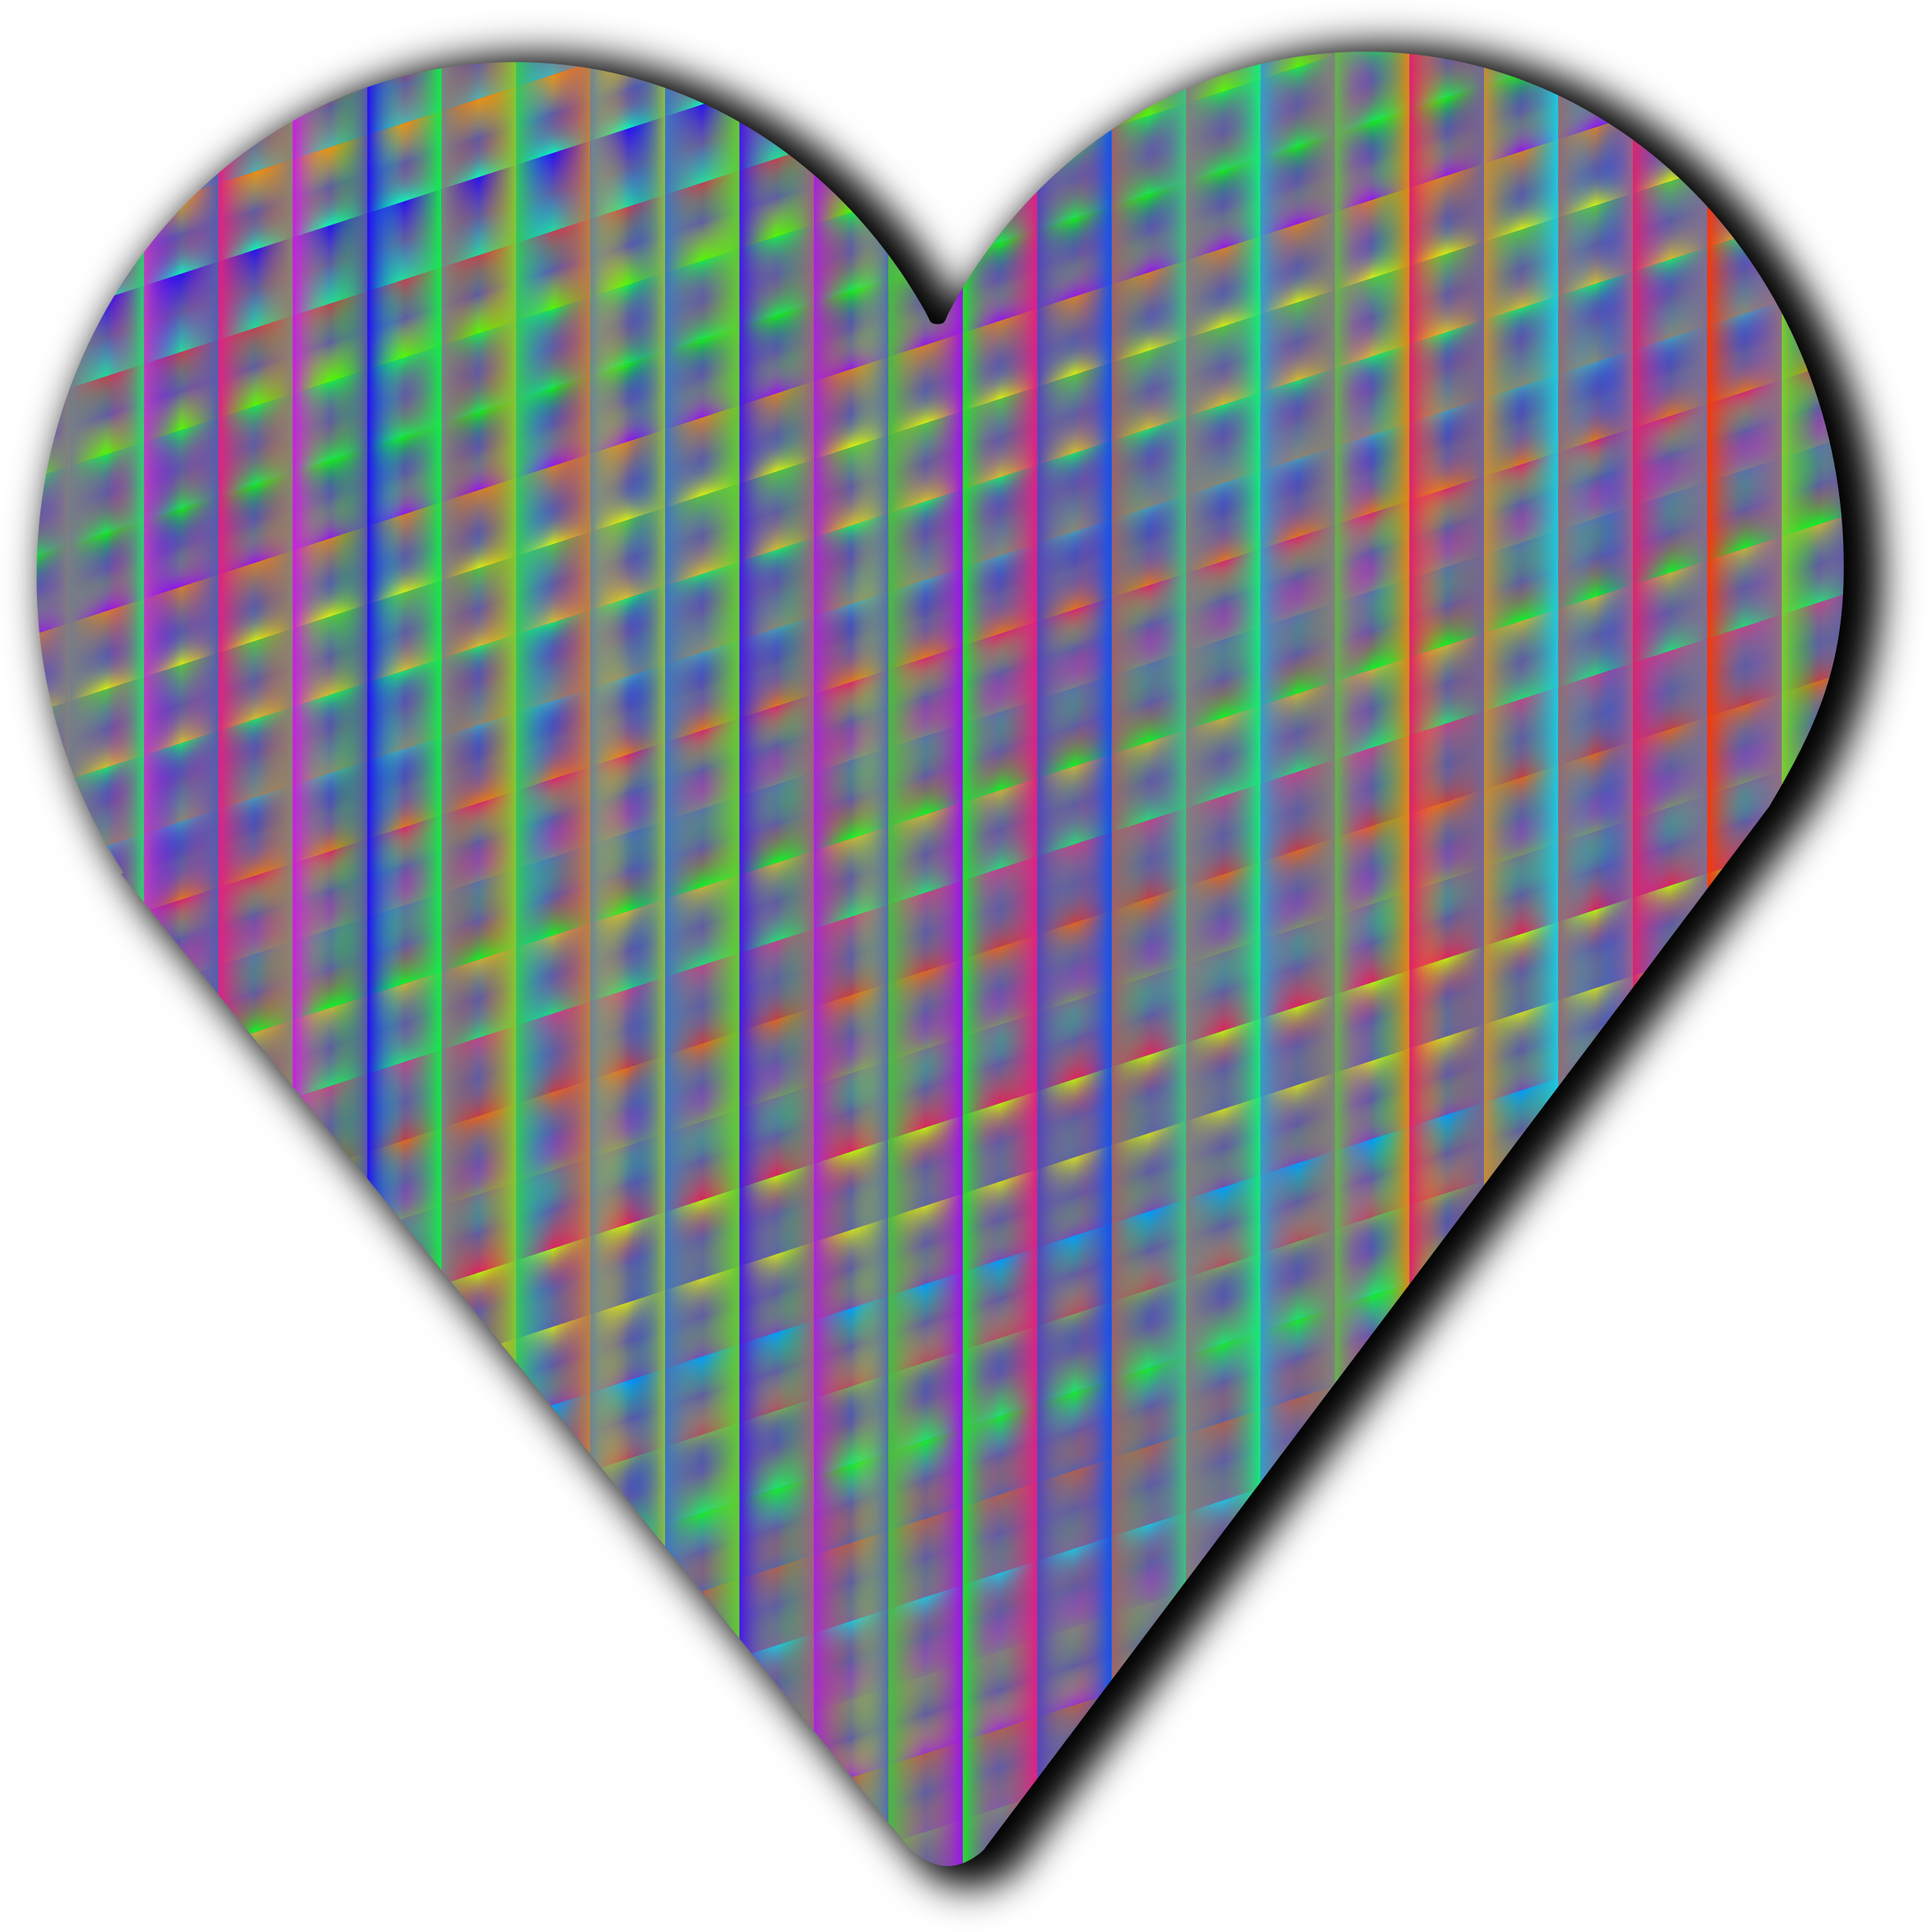 Patterned heart 4 by Firkin